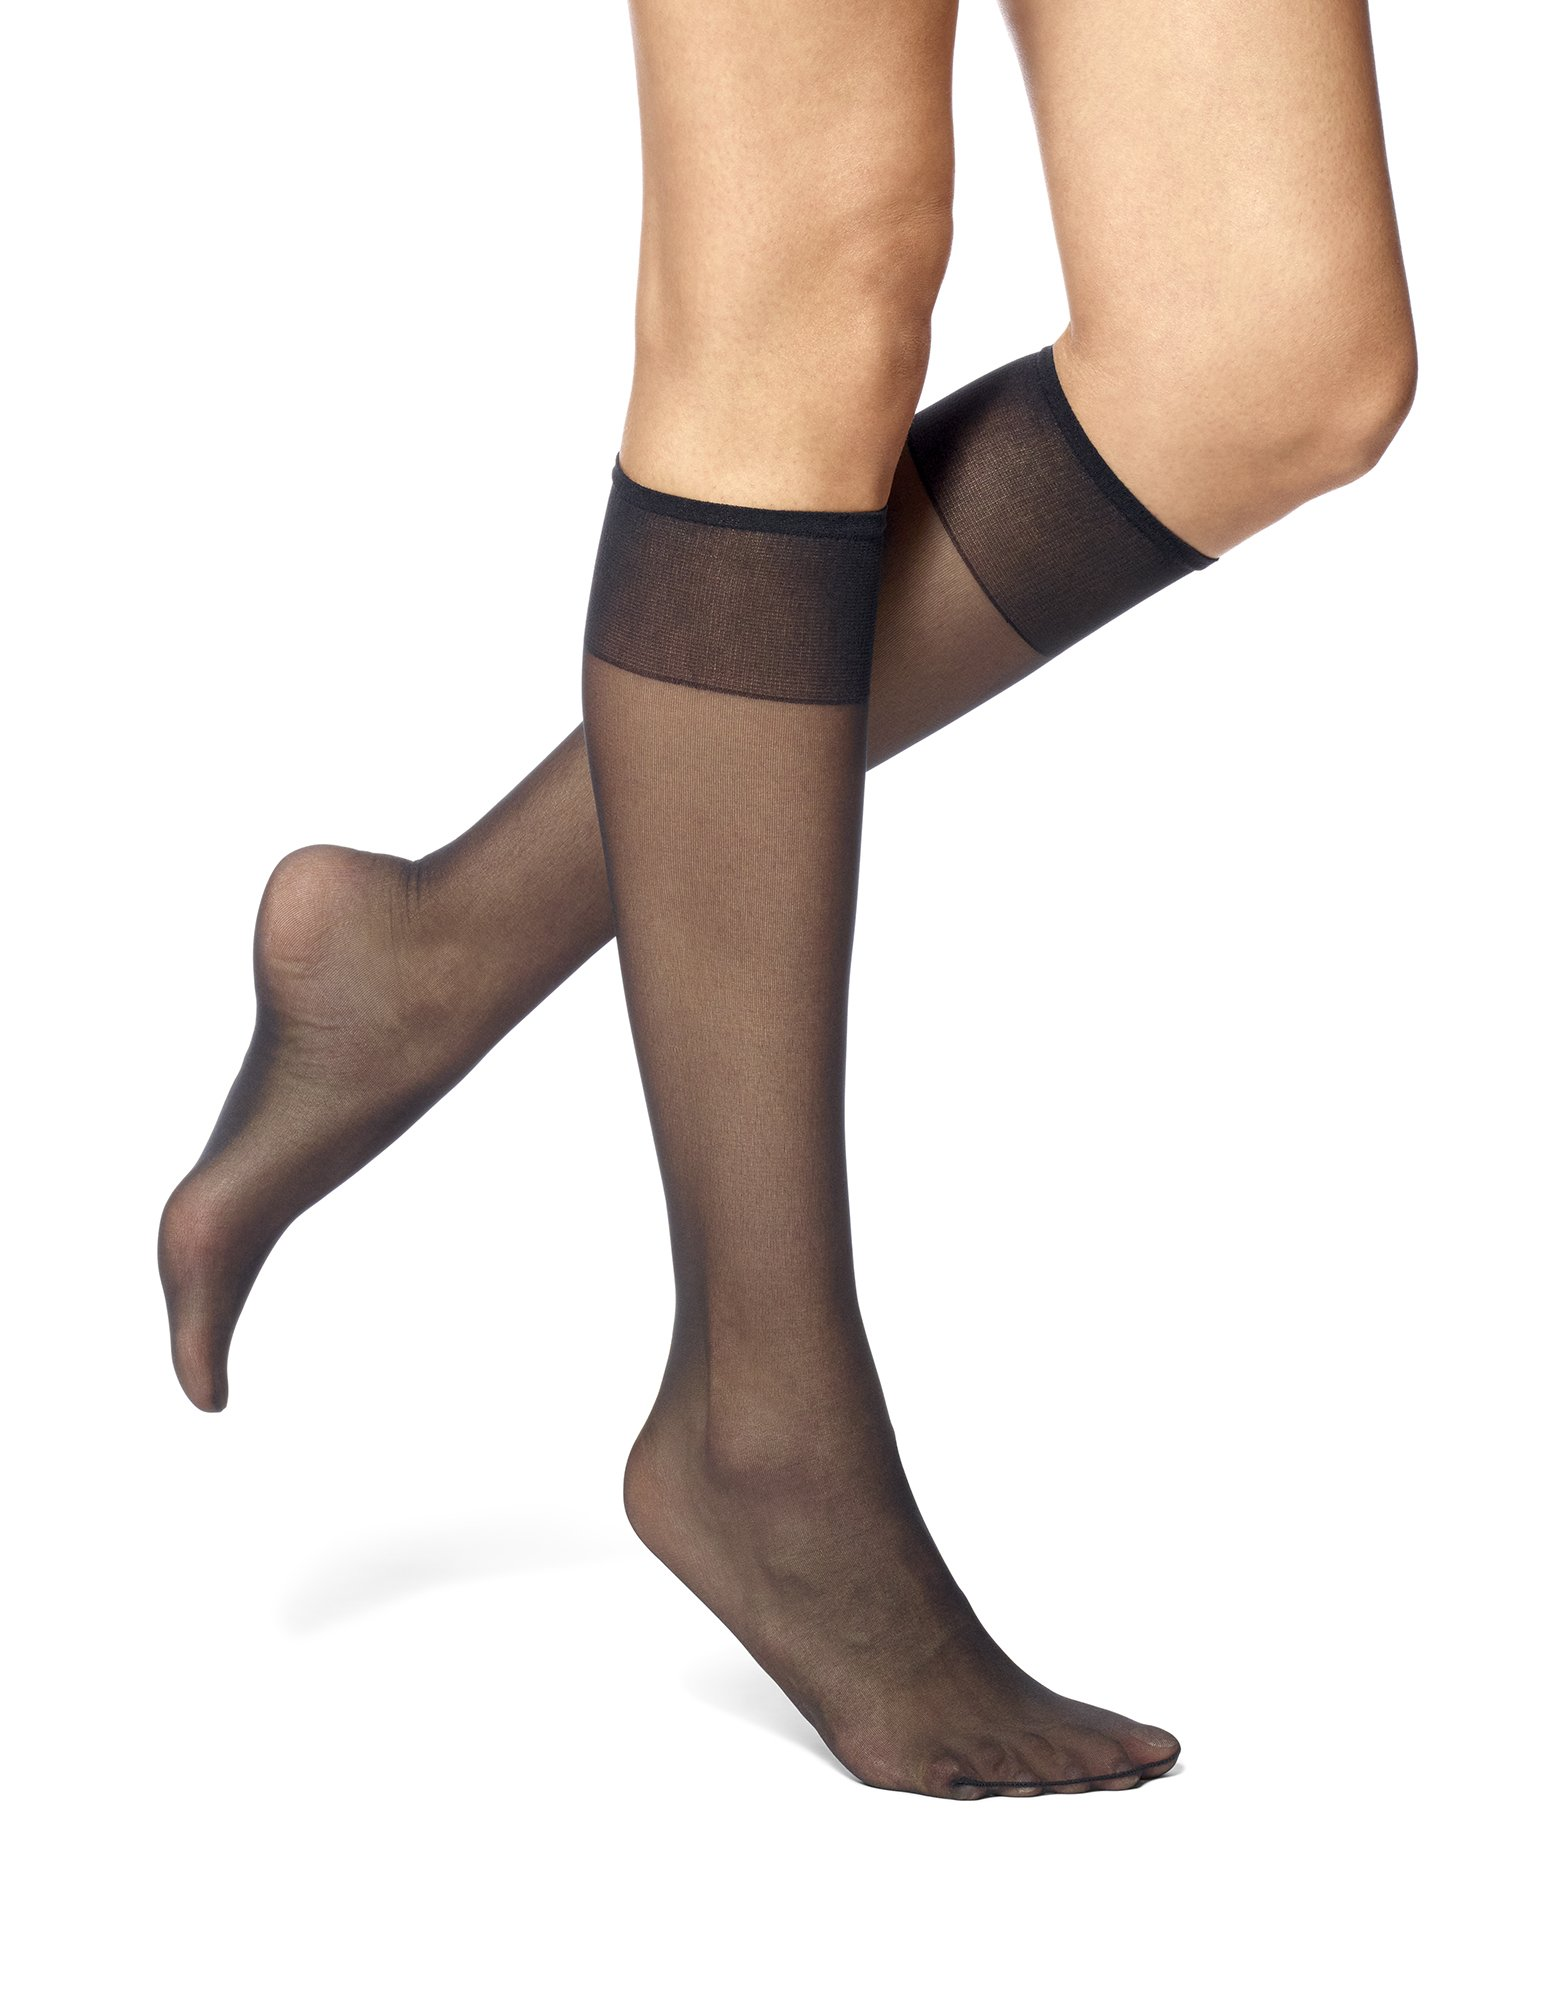 7658024de549 No Nonsense Women's Value Bundle Knee High Pantyhose with Sheer Toe 10-Pack  product image